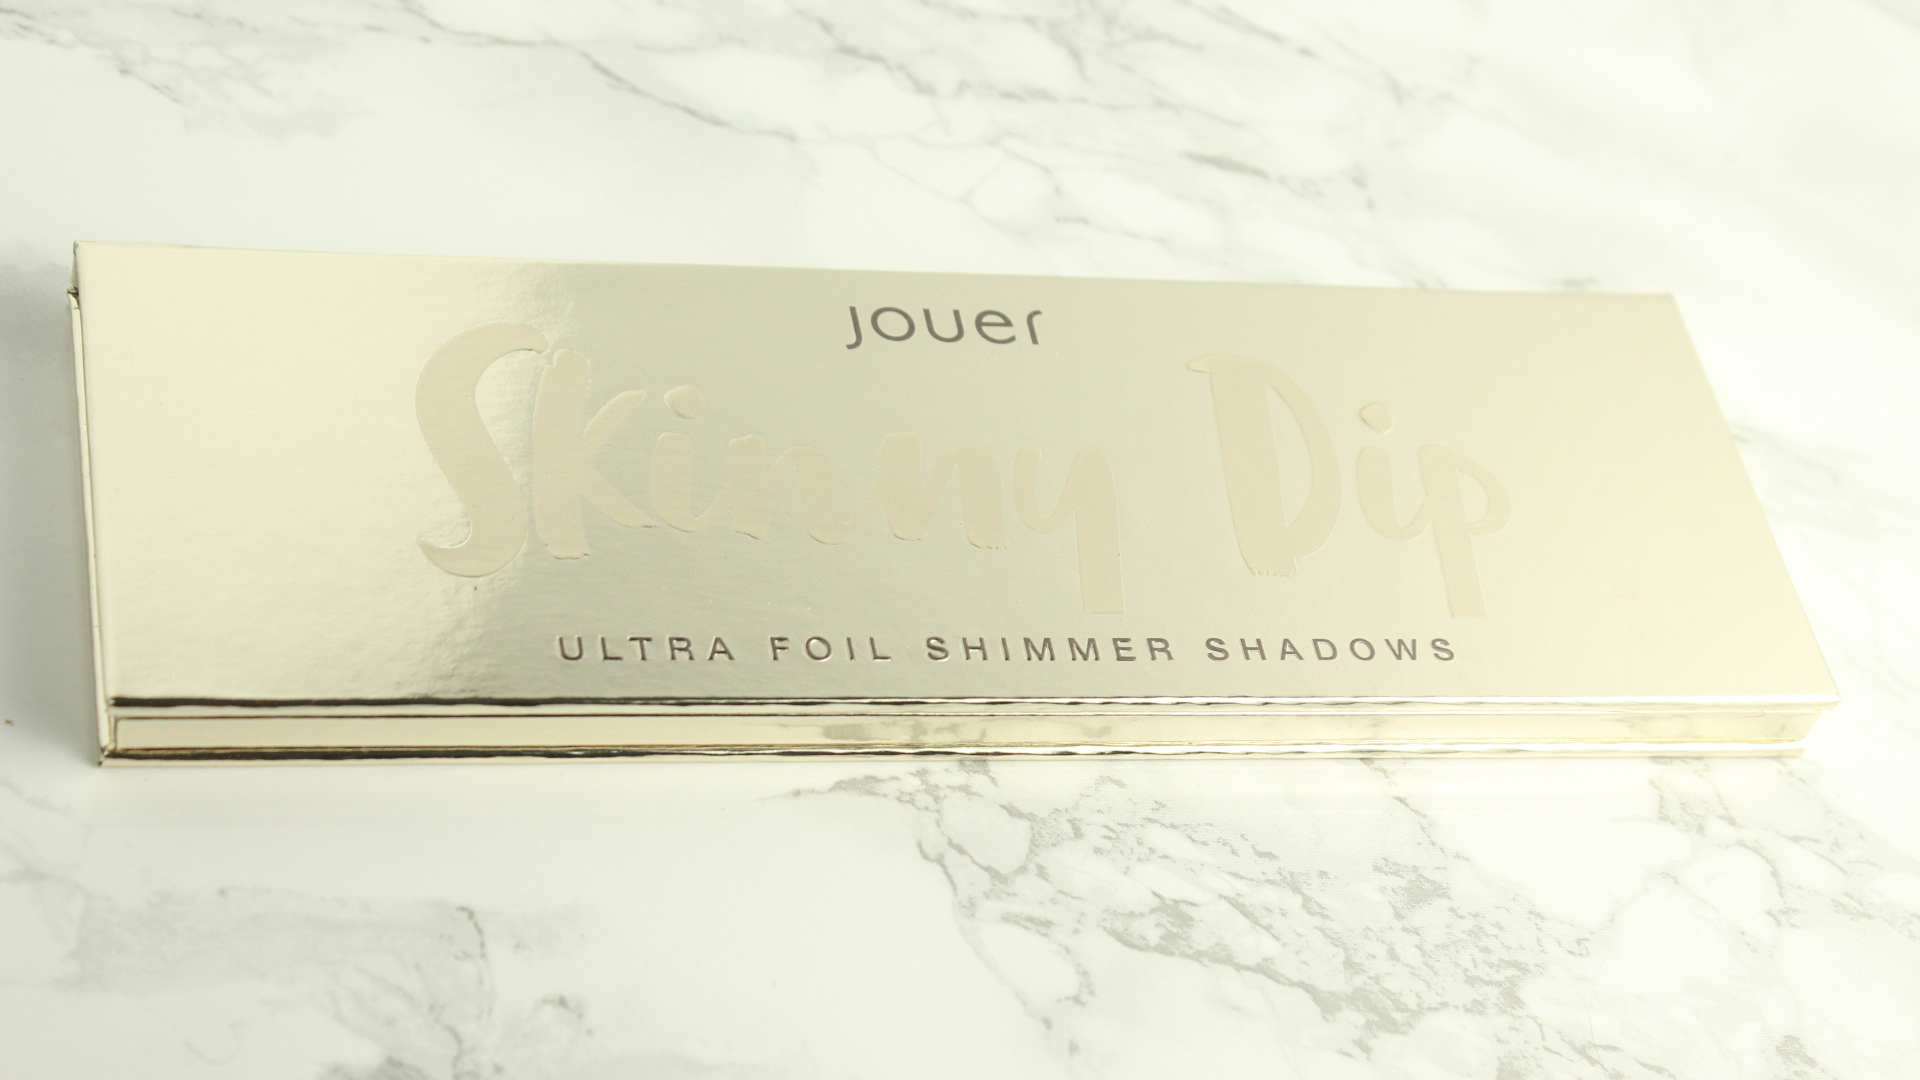 JOUER SKINNY DIP ULTRA FOIL SHIMMER SHADOWS PALETTE: REVIEW, PHOTOS, & SWATCHES